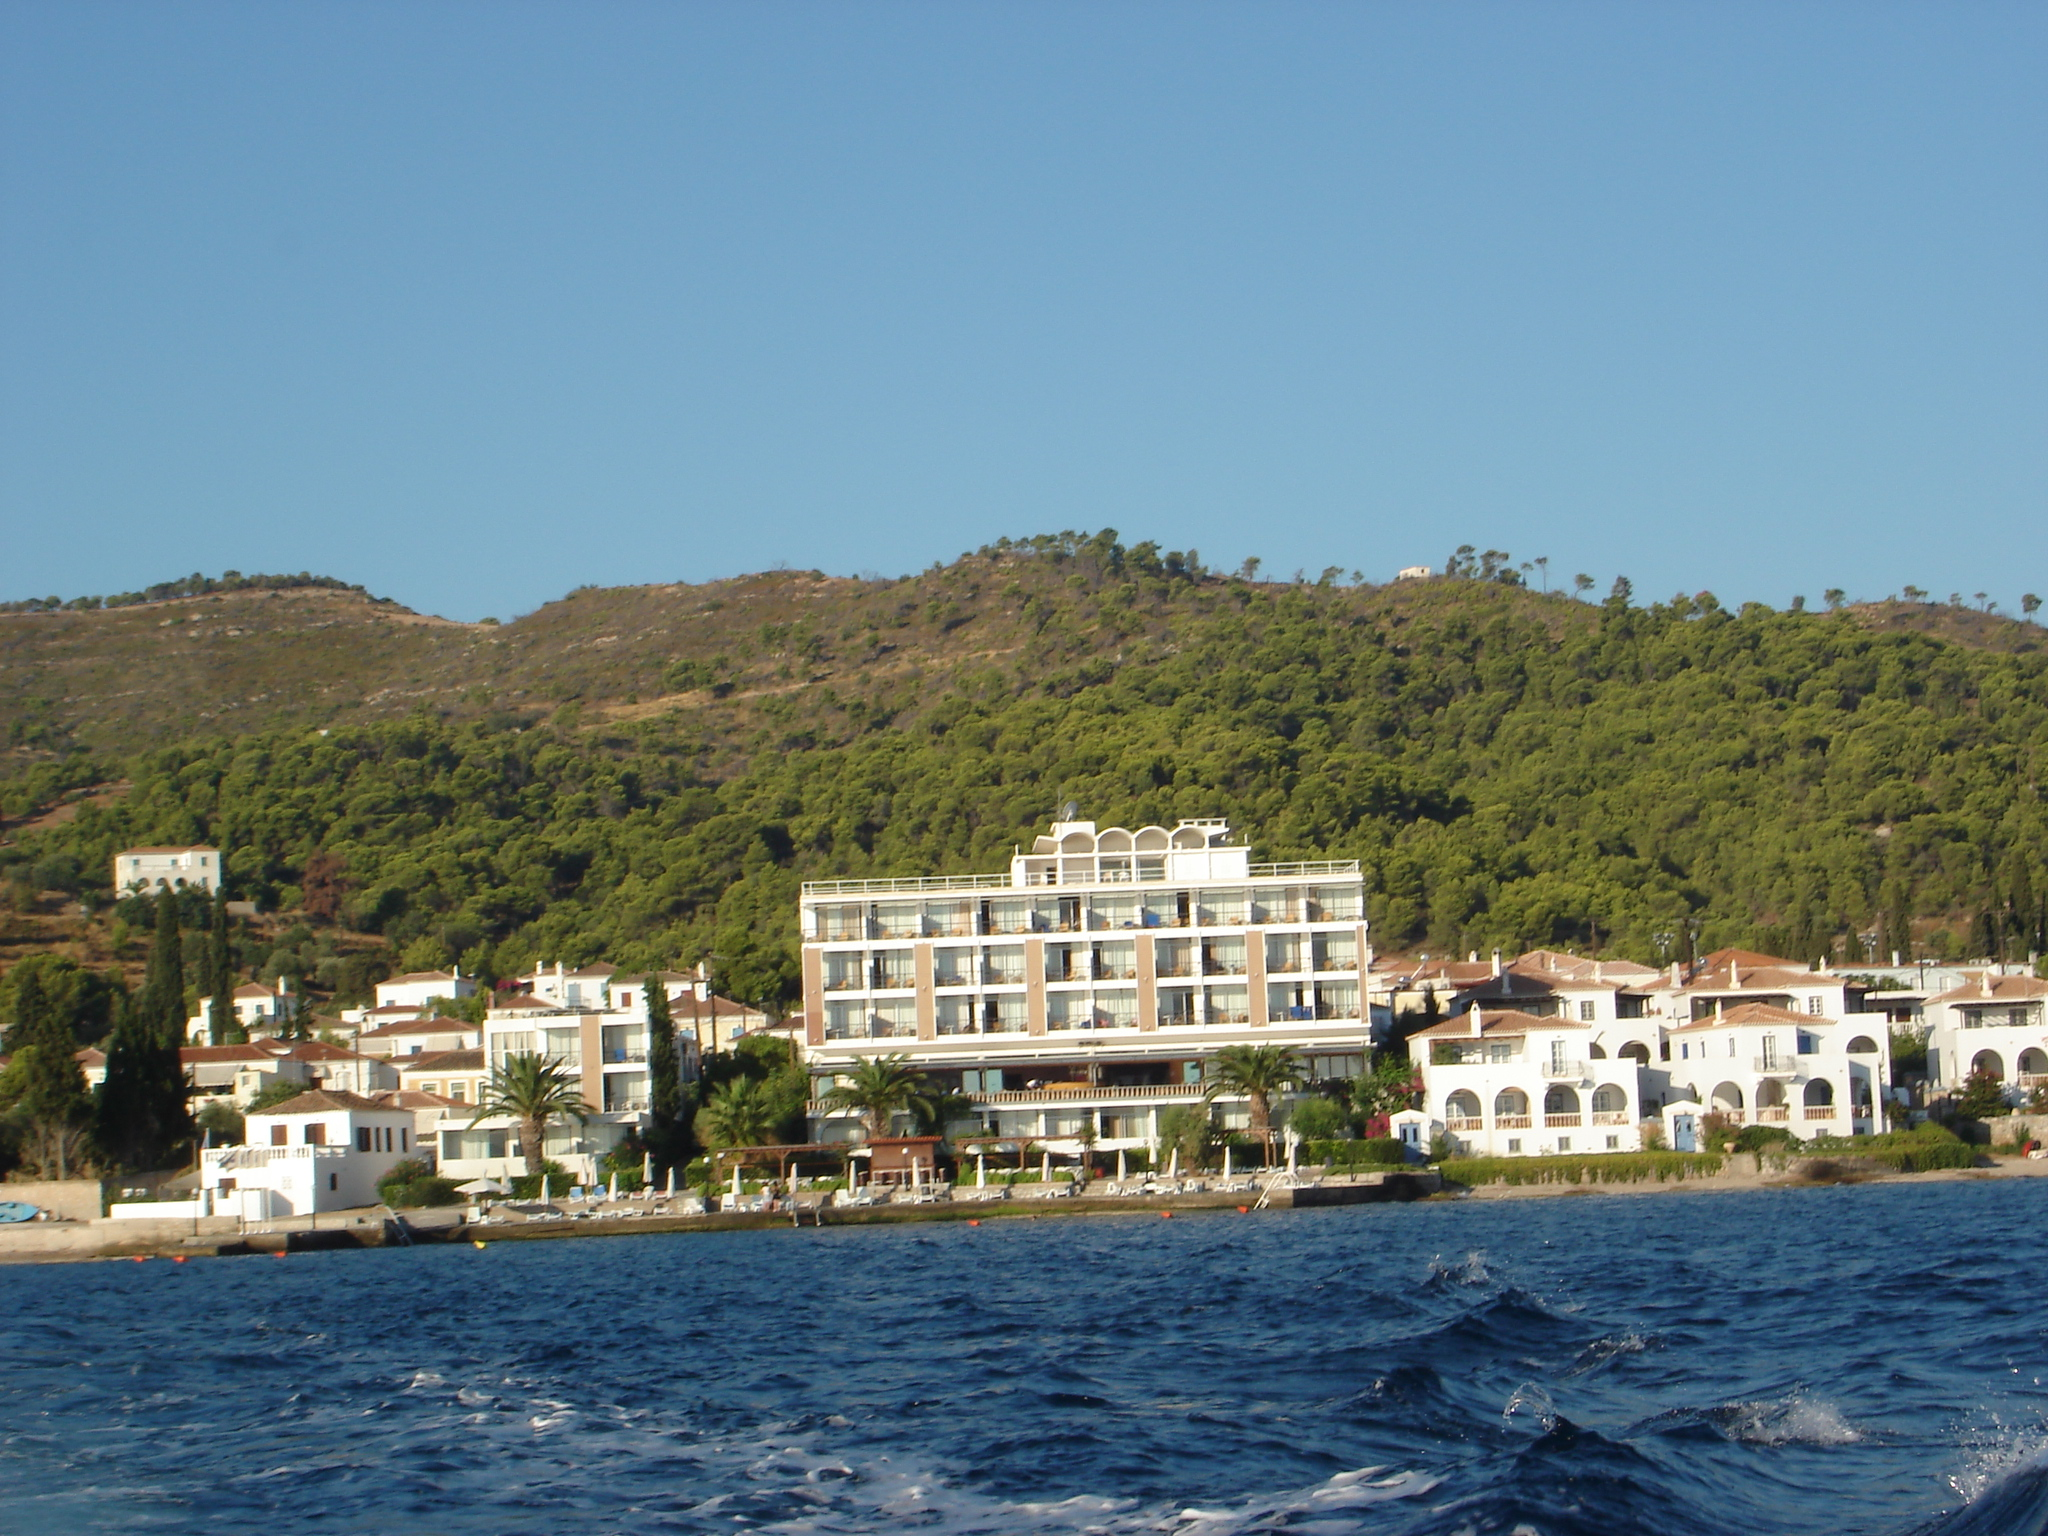 Spetses Hotel seen from the sea